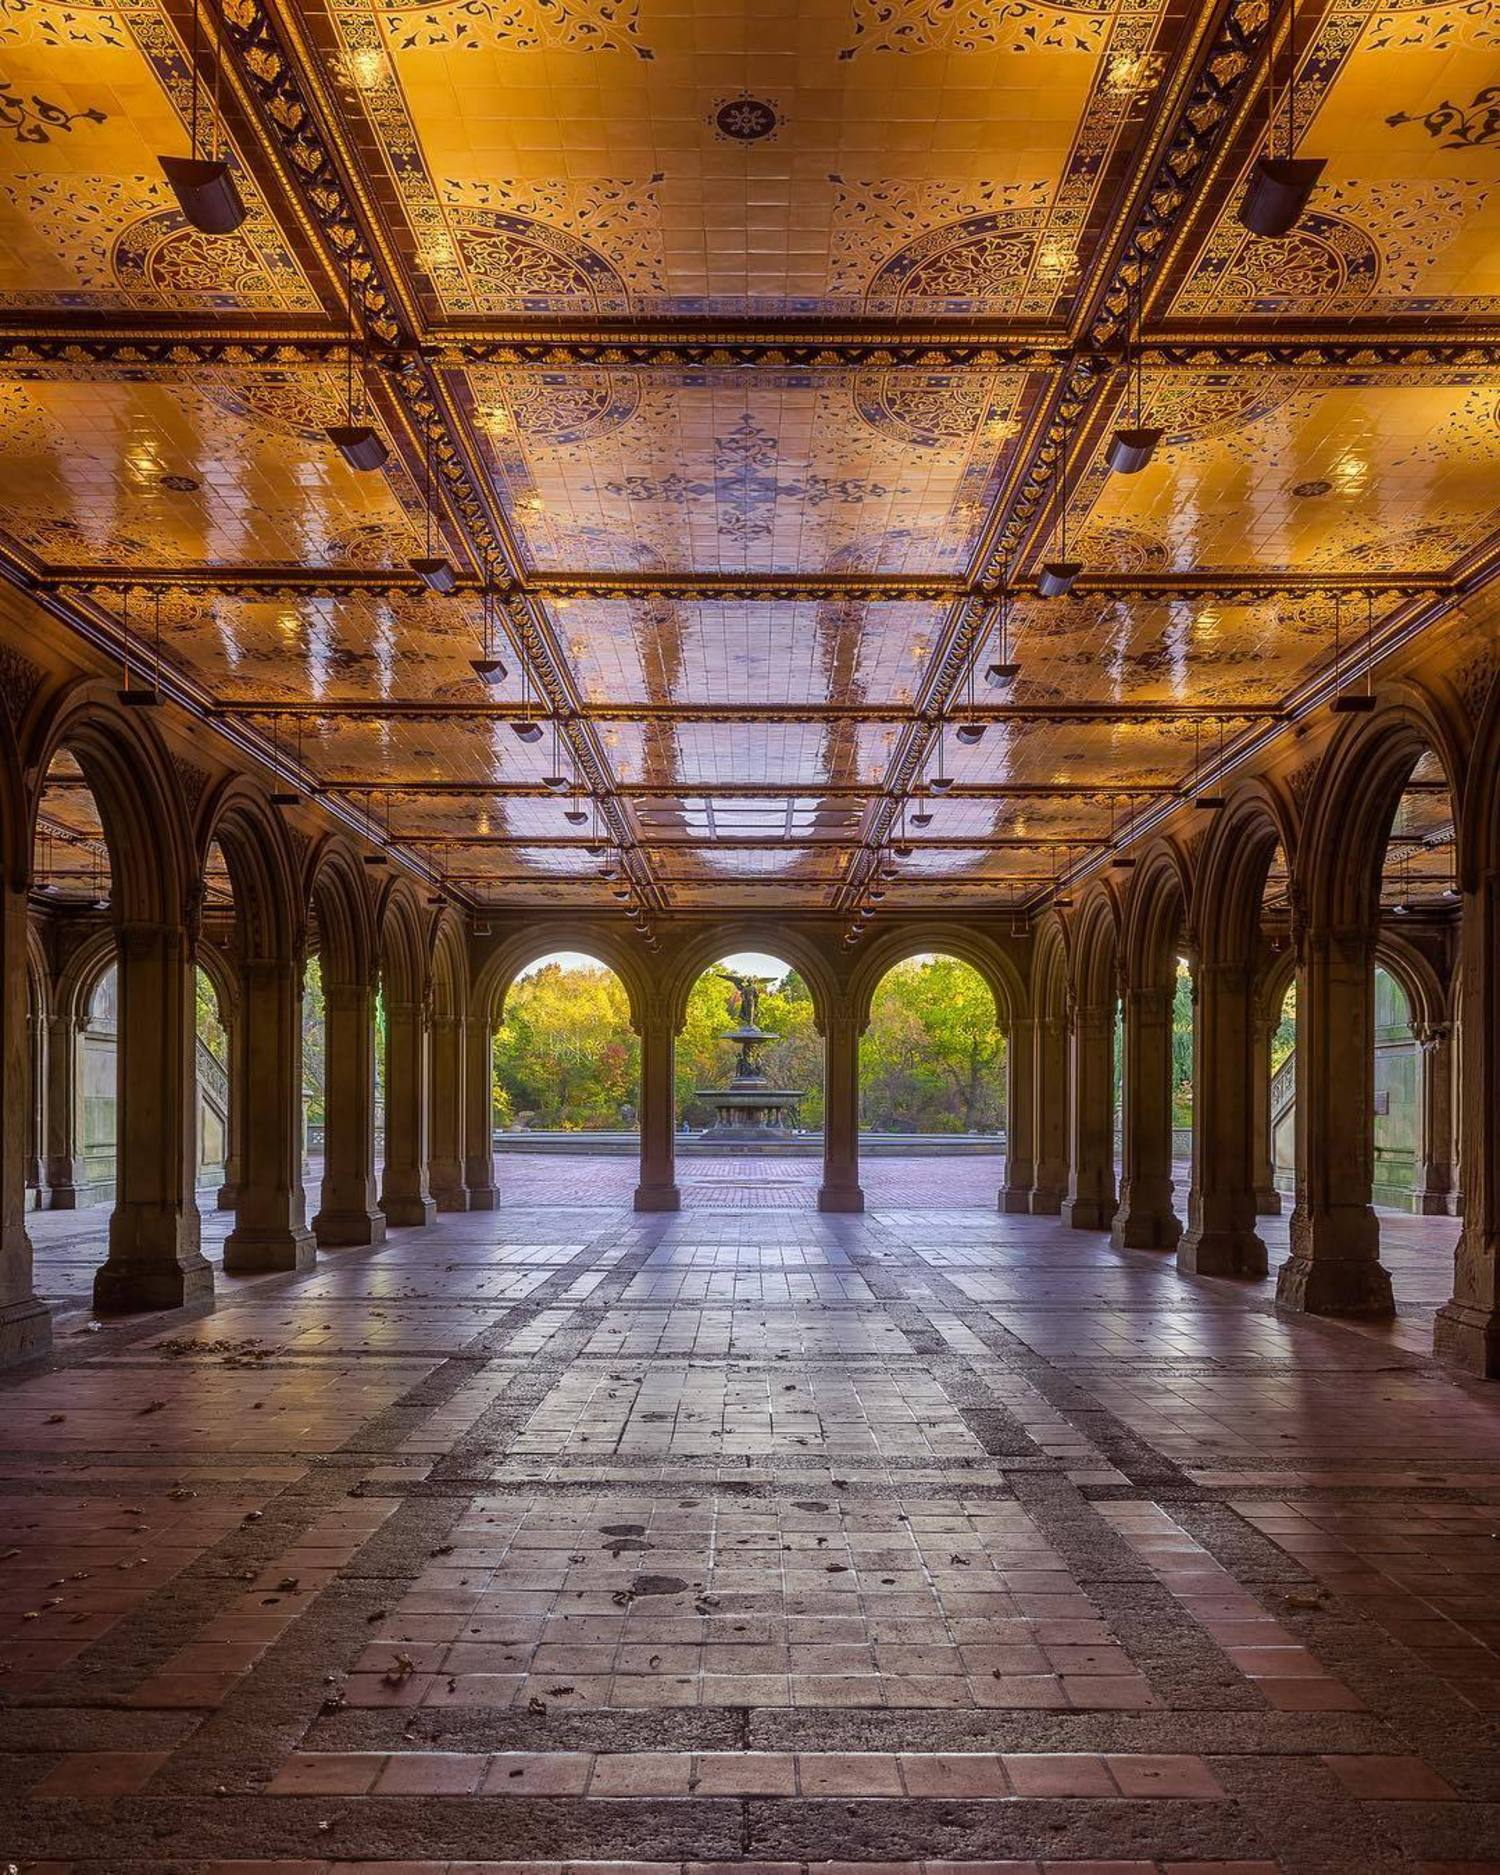 Bethesda Terrace and Fountain, Central Park, New York